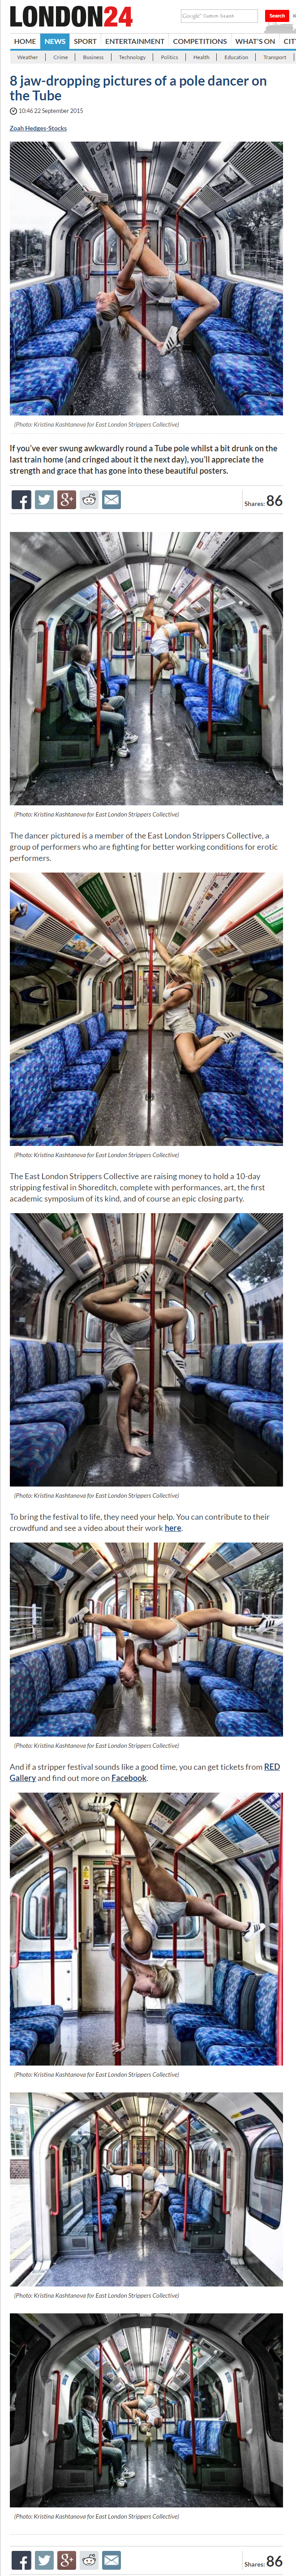 8 jaw dropping pictures of a pole dancer on the Tube   Quirky London   London 24.png